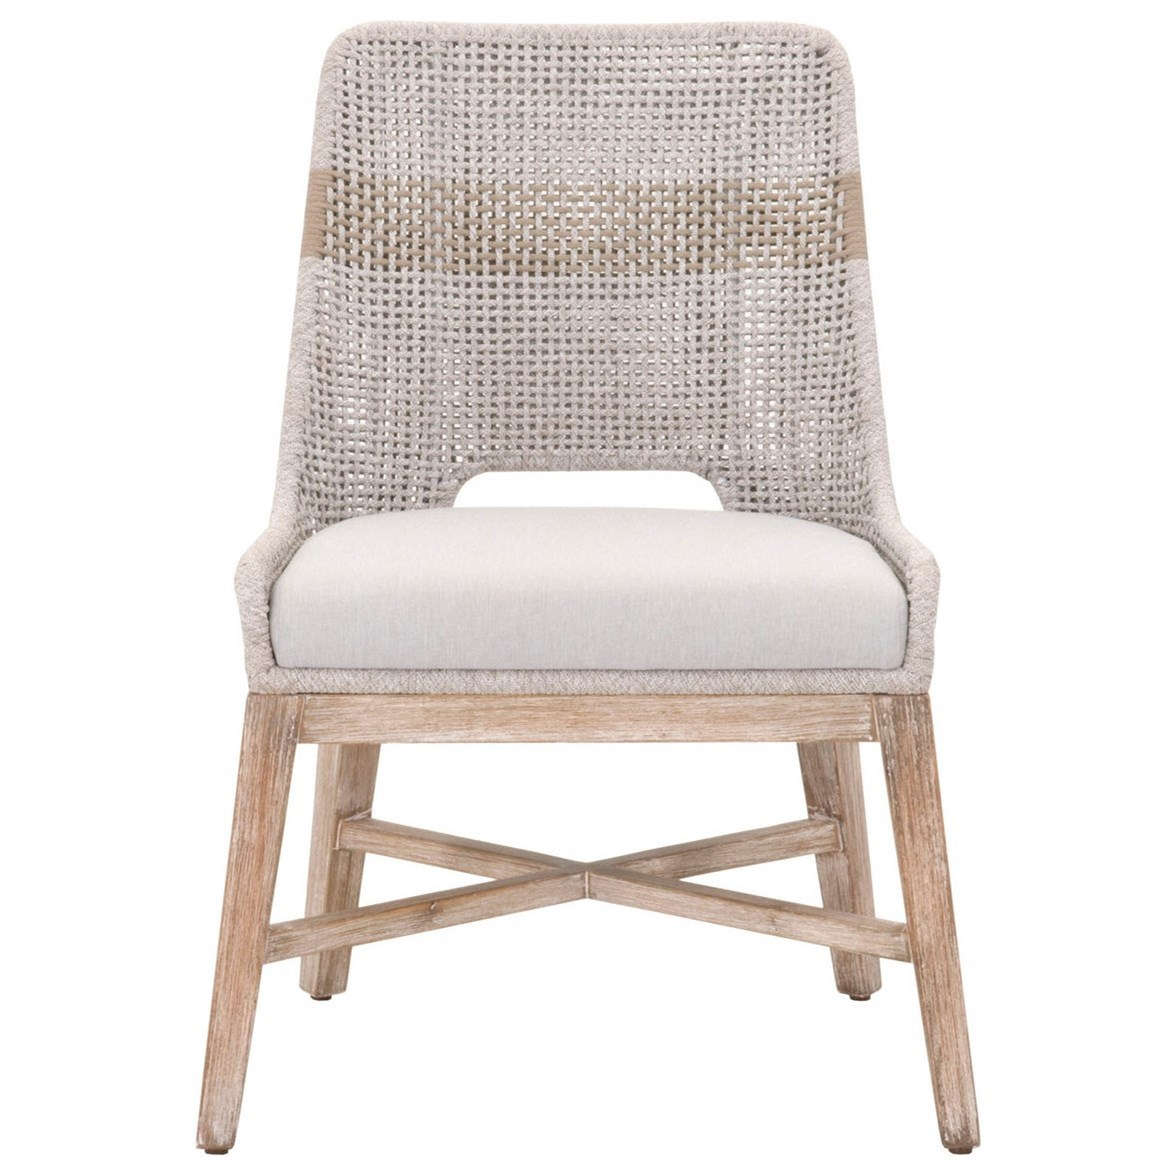 Woven Tapestry Dining Chair by Essentials for Living at Baer's Furniture